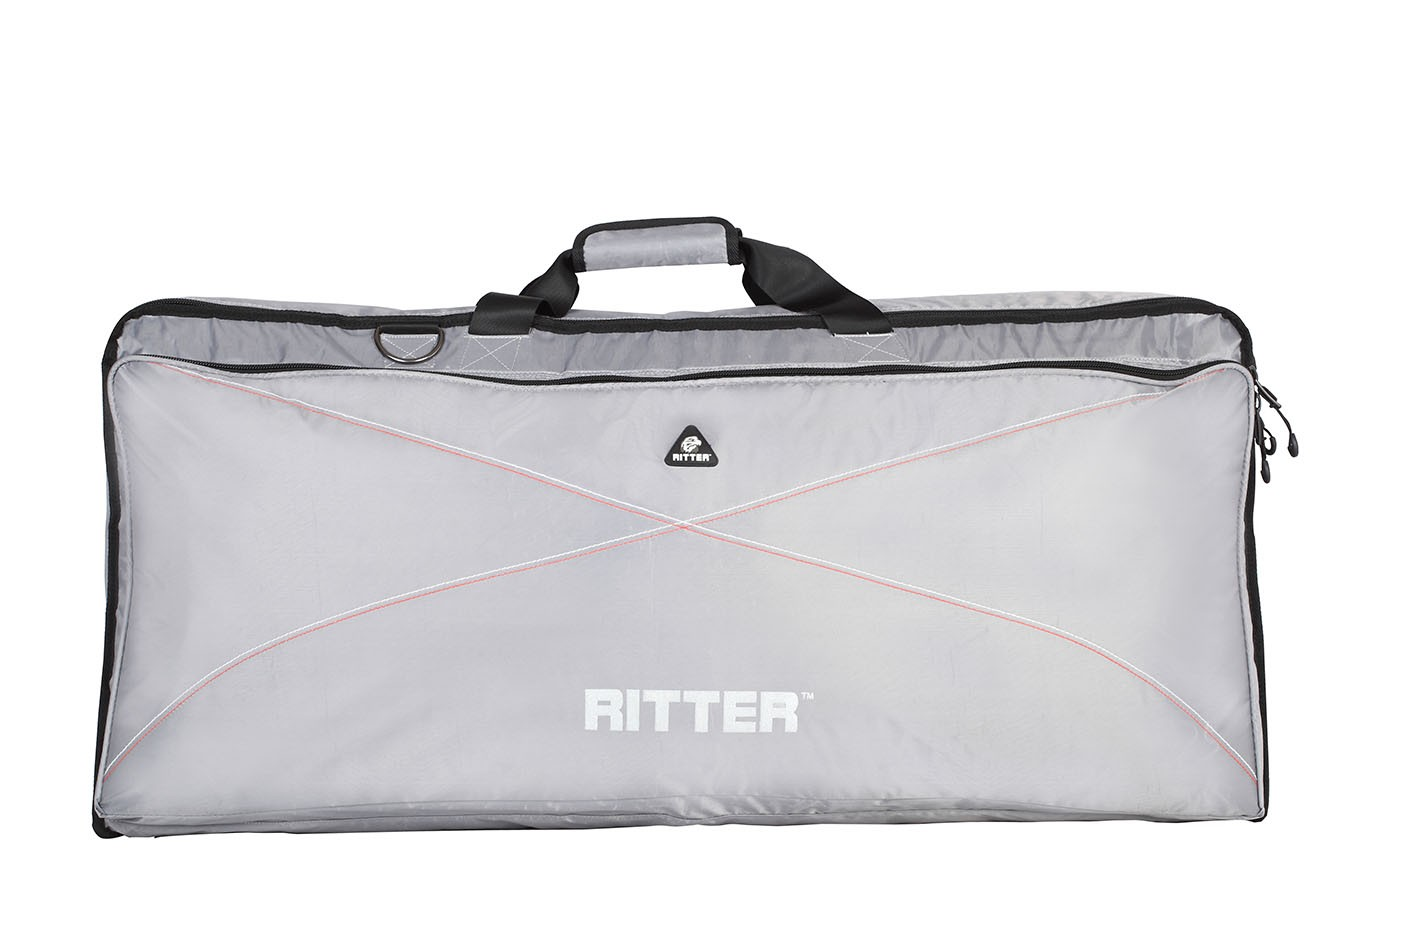 Ritter RKP2-65/SRW Keyboard Bag 1470x455x190 - Silver Grey/White